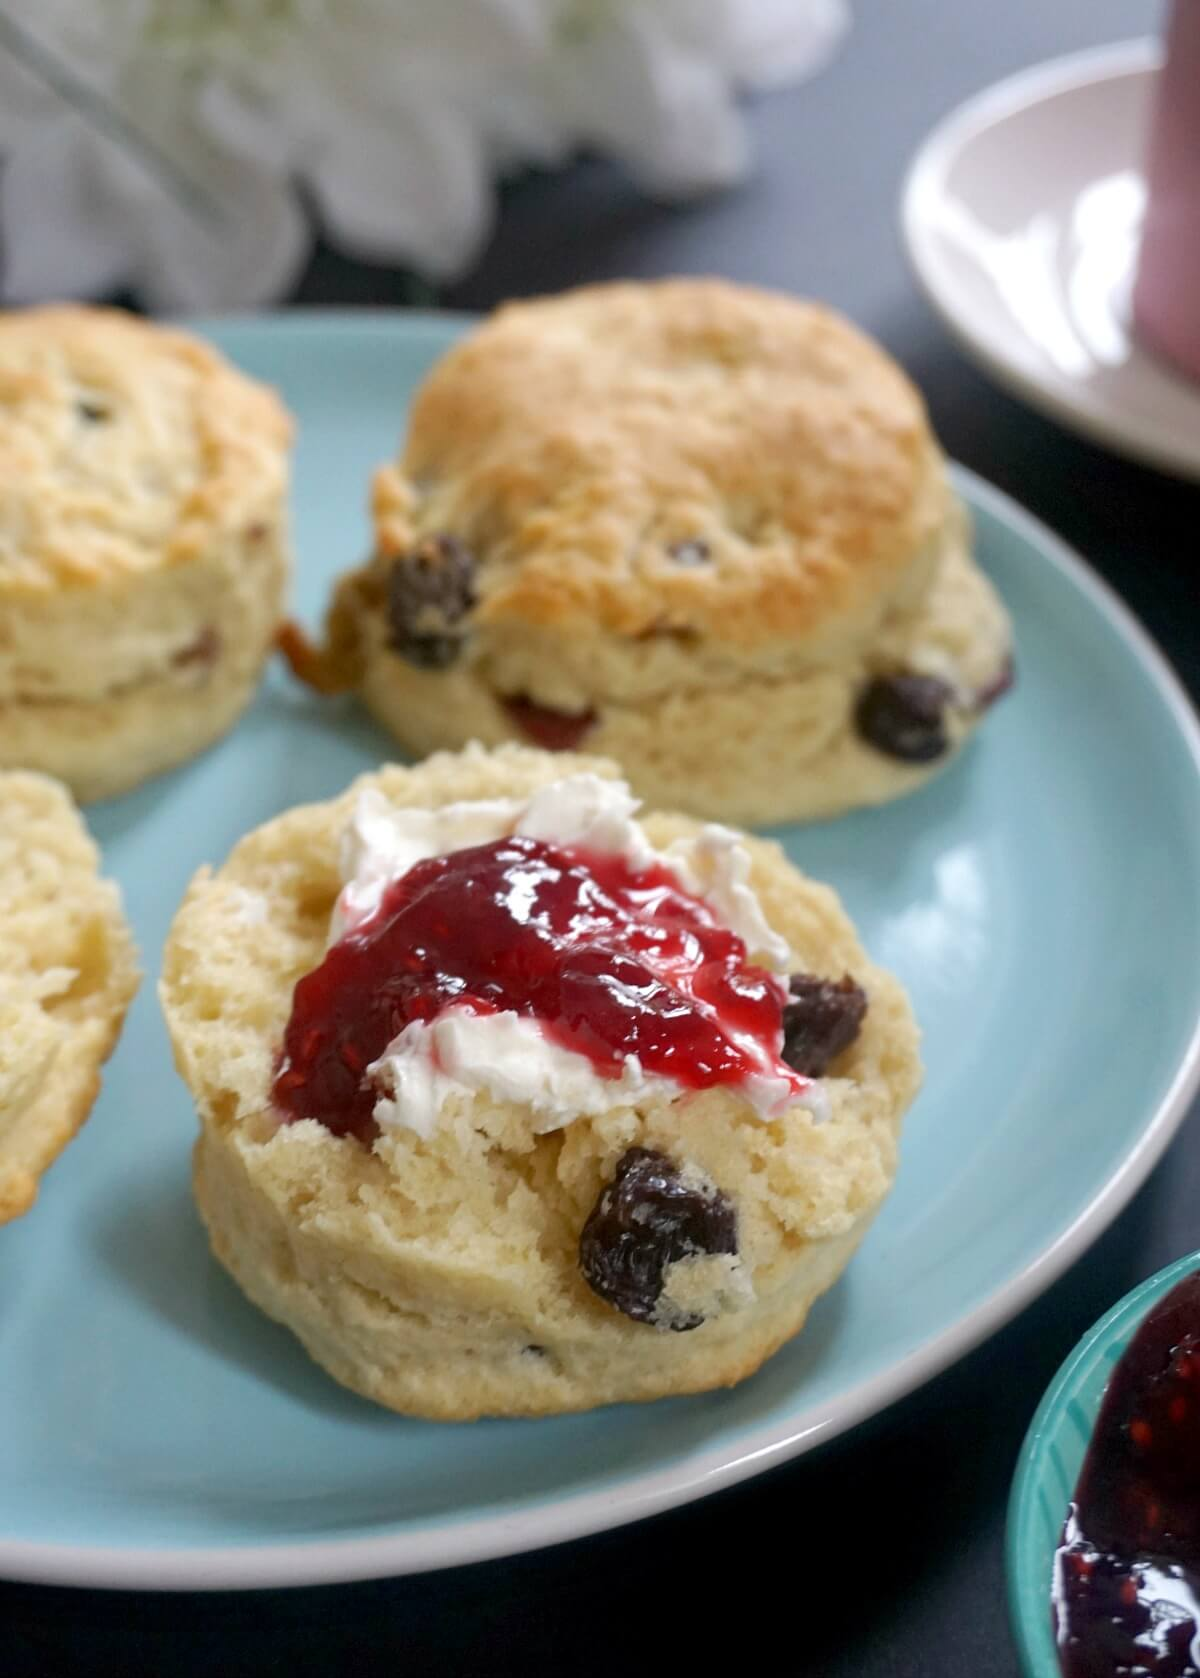 A light blue plate with 3 whole scones and half a scone topped with cream and jam